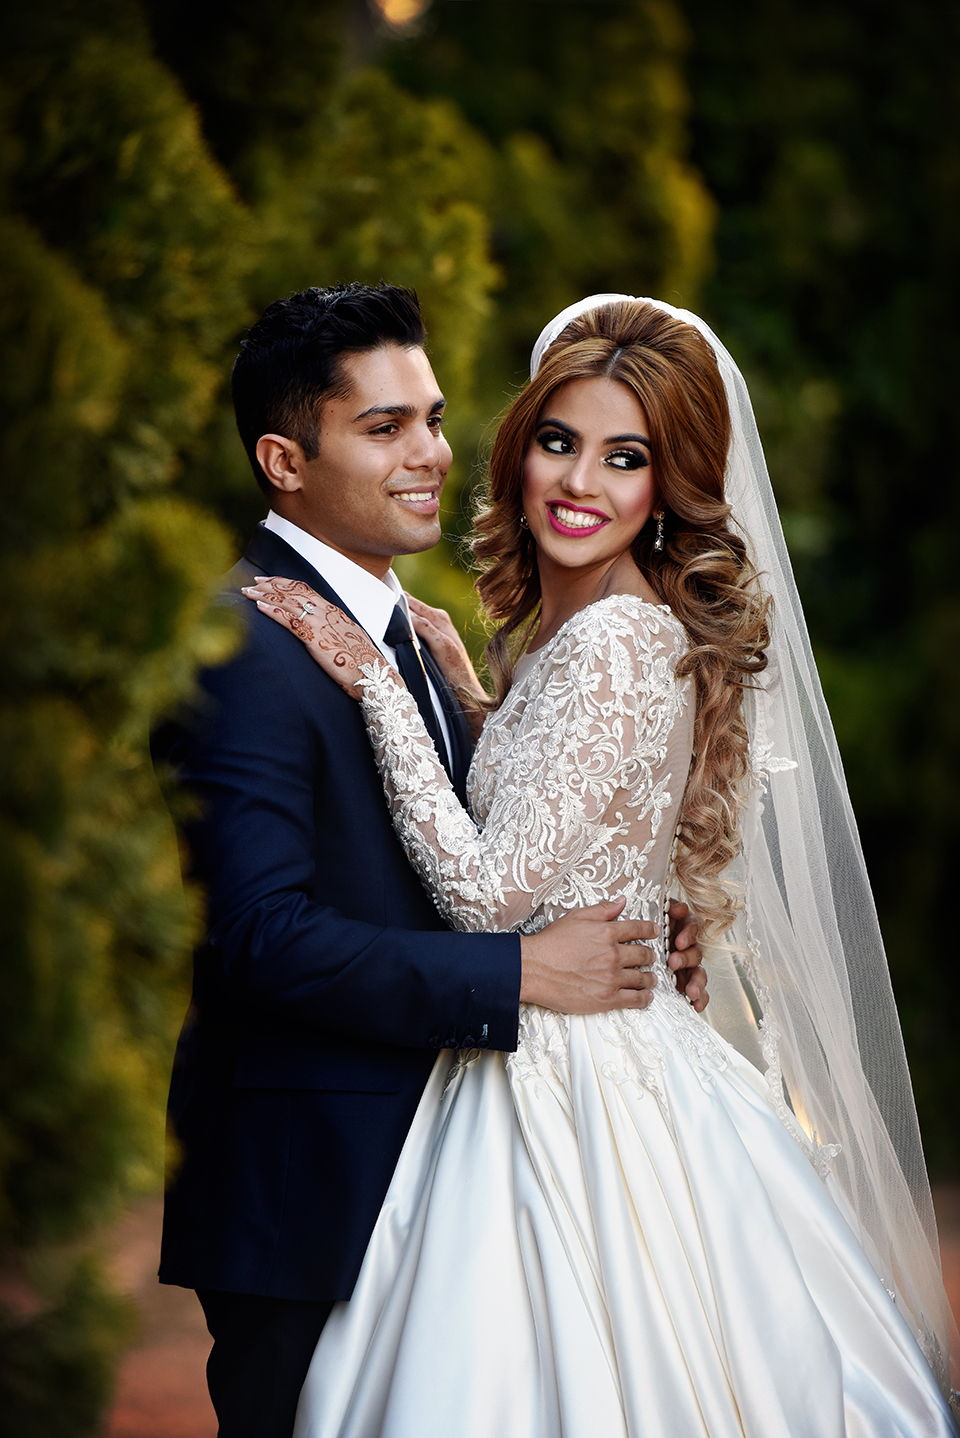 dubai-wedding-photographers-best-wedding-photographers-in-the-world-estilo-photography-stylish-wedding-photography-velmore-wedding-muslim-wedding-johannesburg-gauteng-photographers-019z.jpg